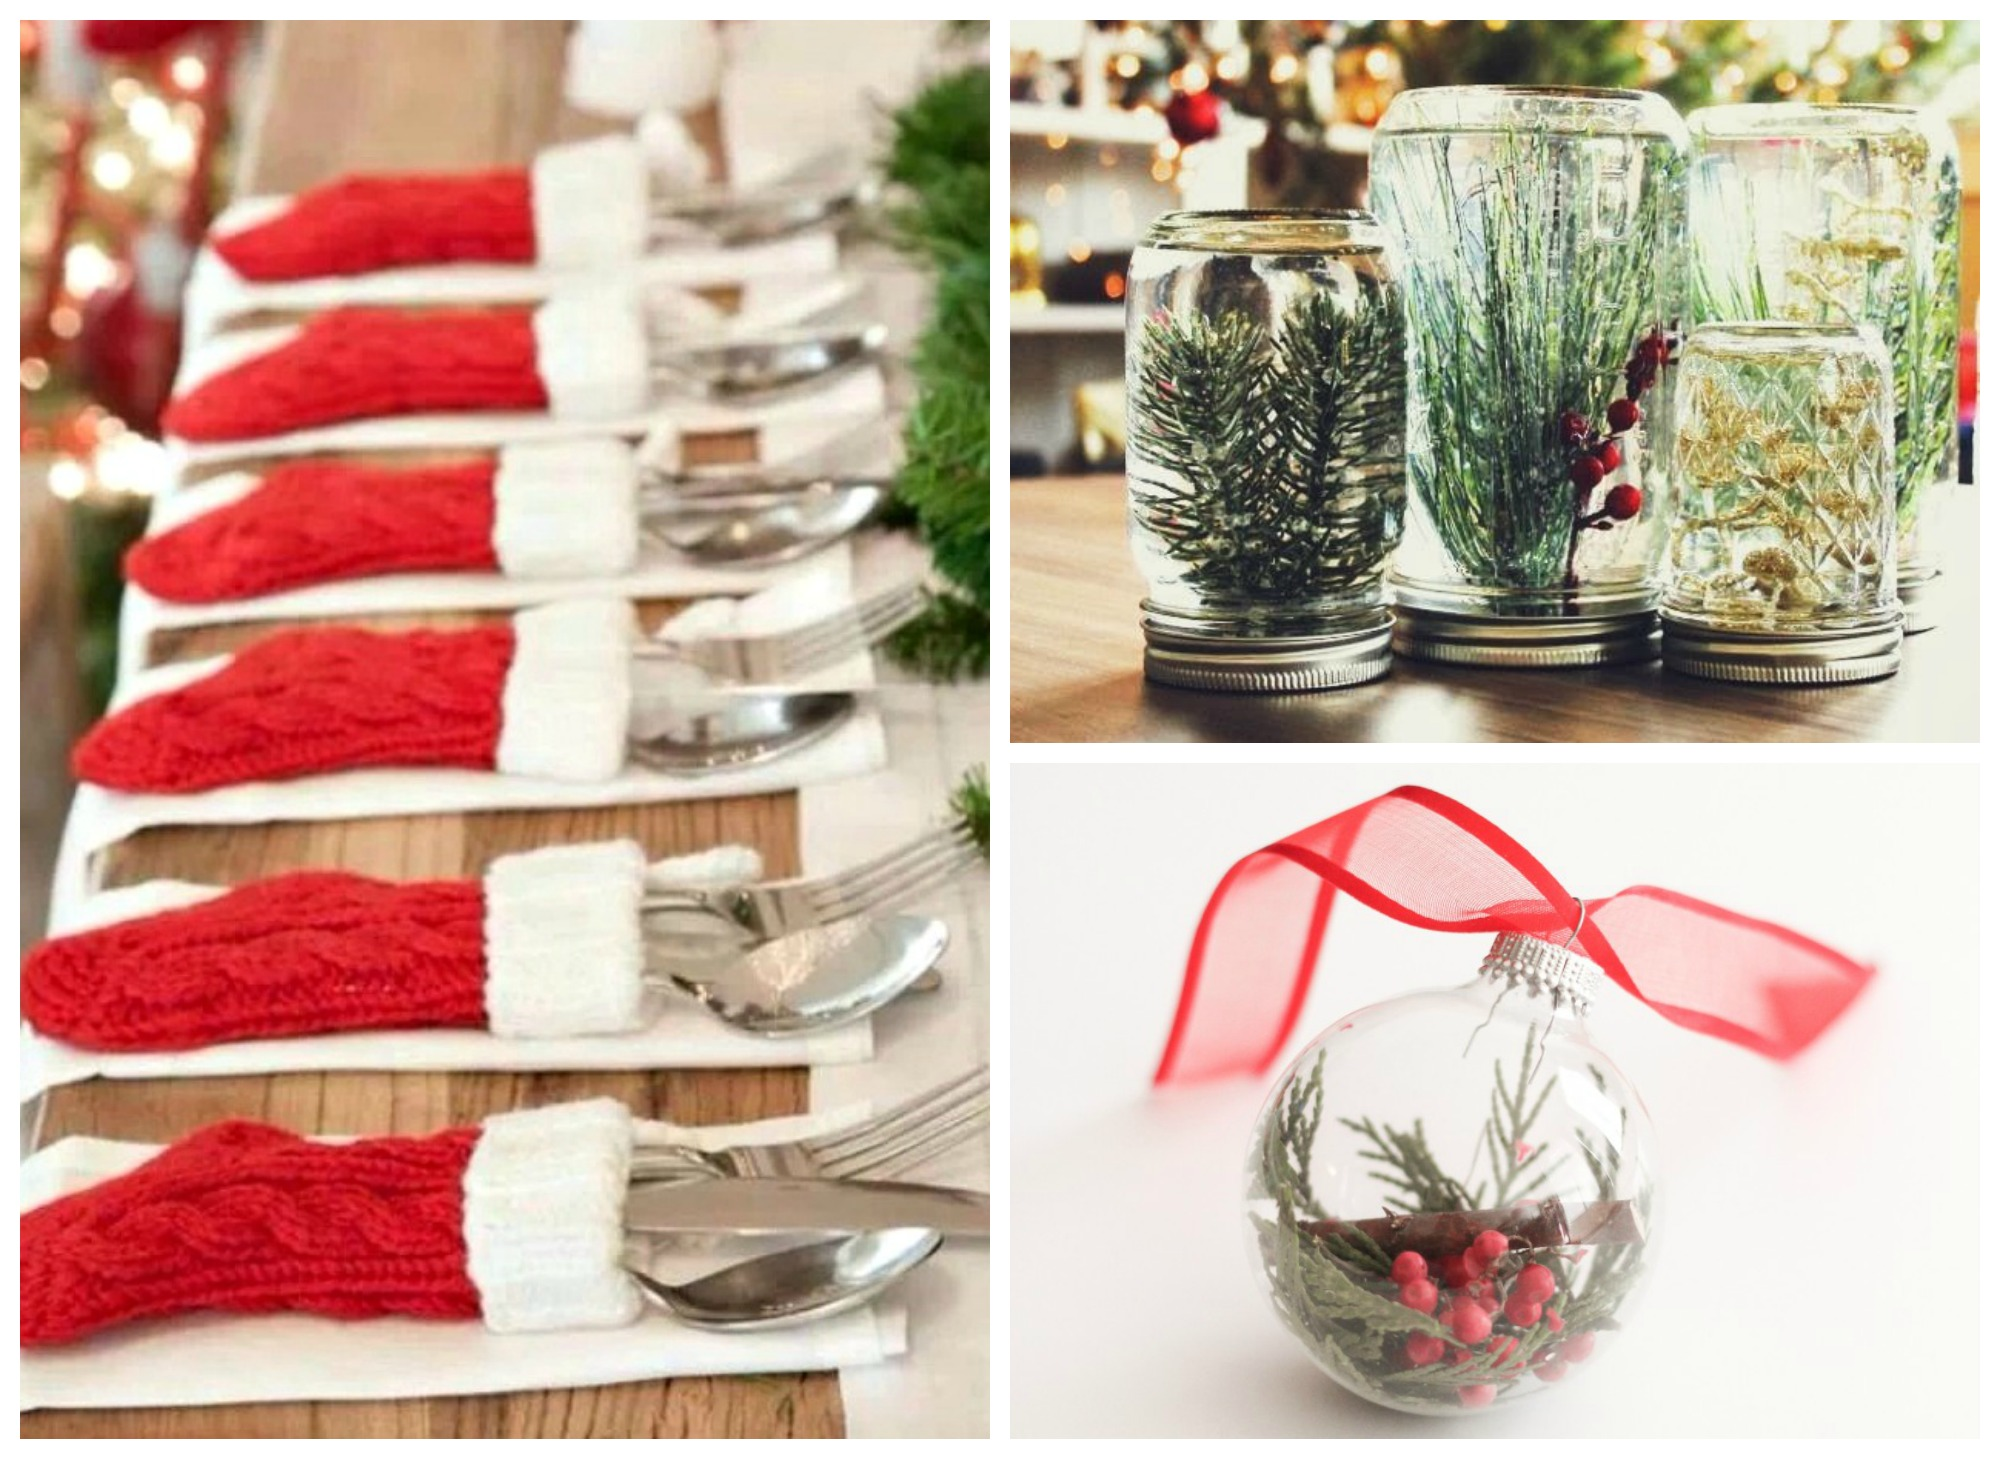 10 dollar store diy christmas decorations that are beyond easy - Where To Buy Cheap Christmas Decorations